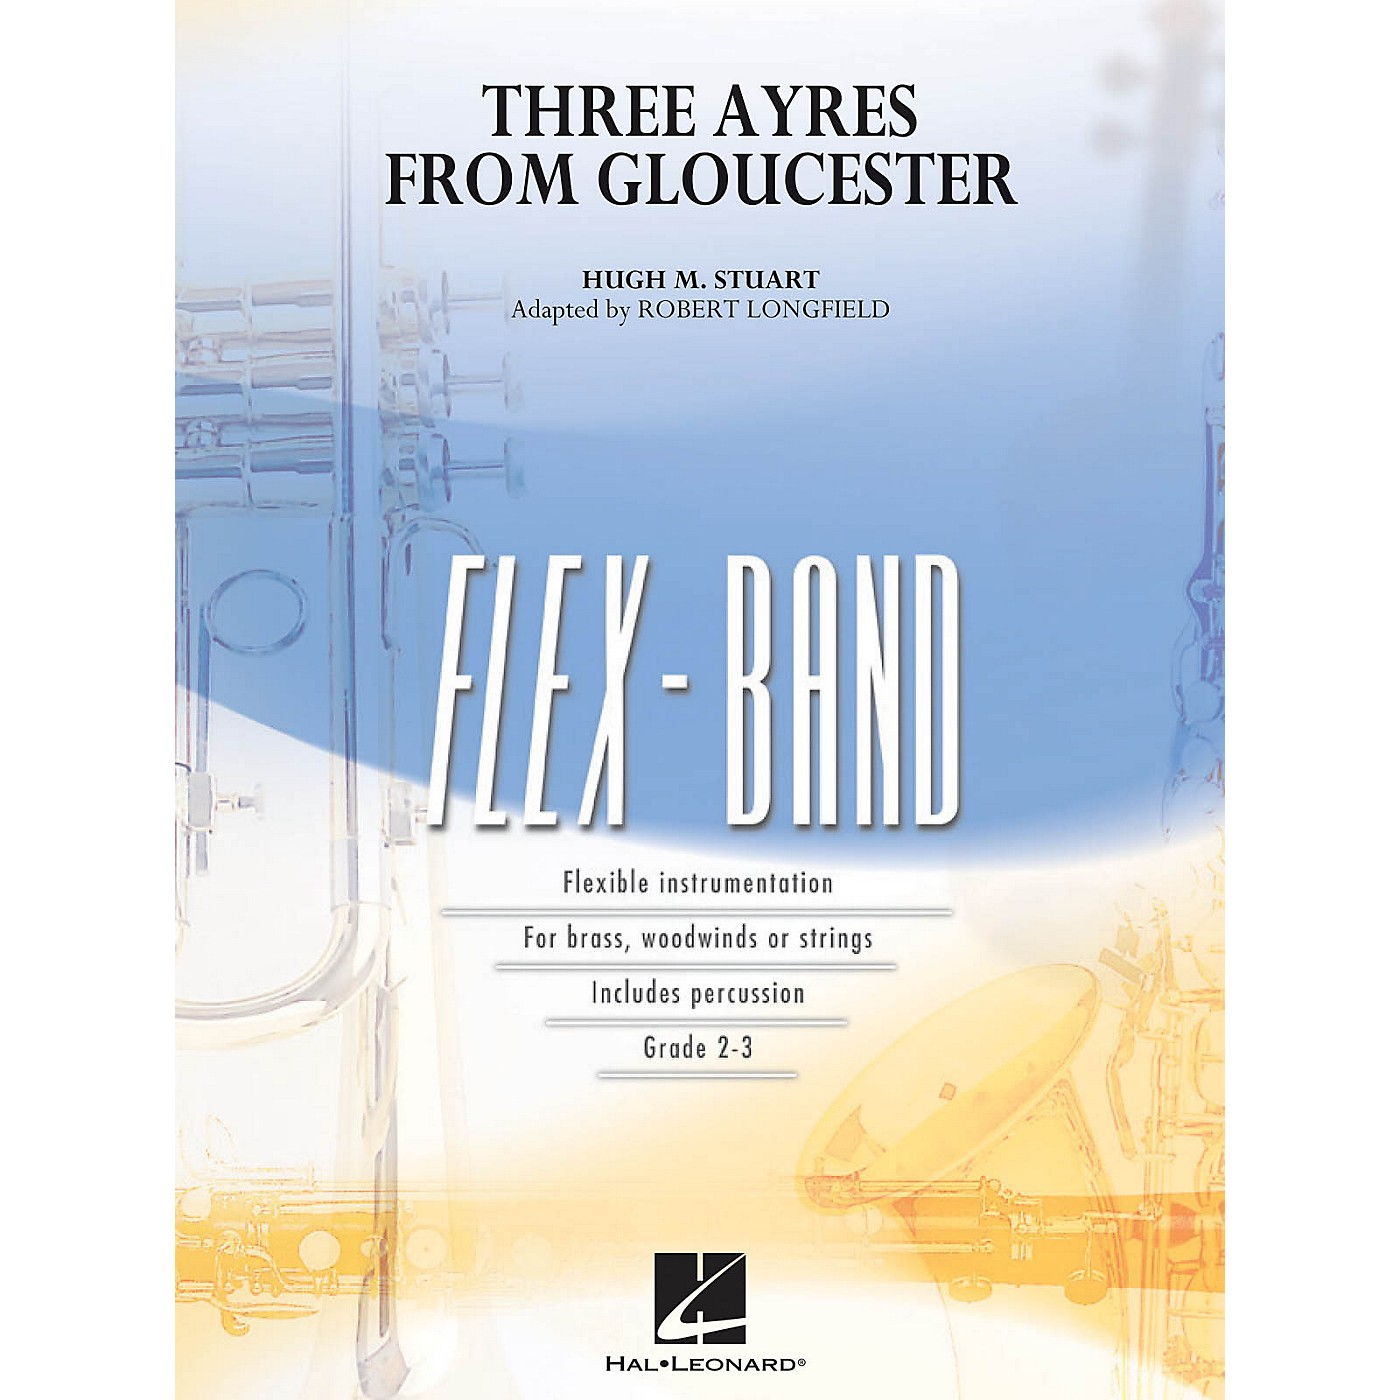 Hal Leonard Three Ayres from Gloucester Concert Band Level 2-3 Arranged by Robert Longfield thumbnail